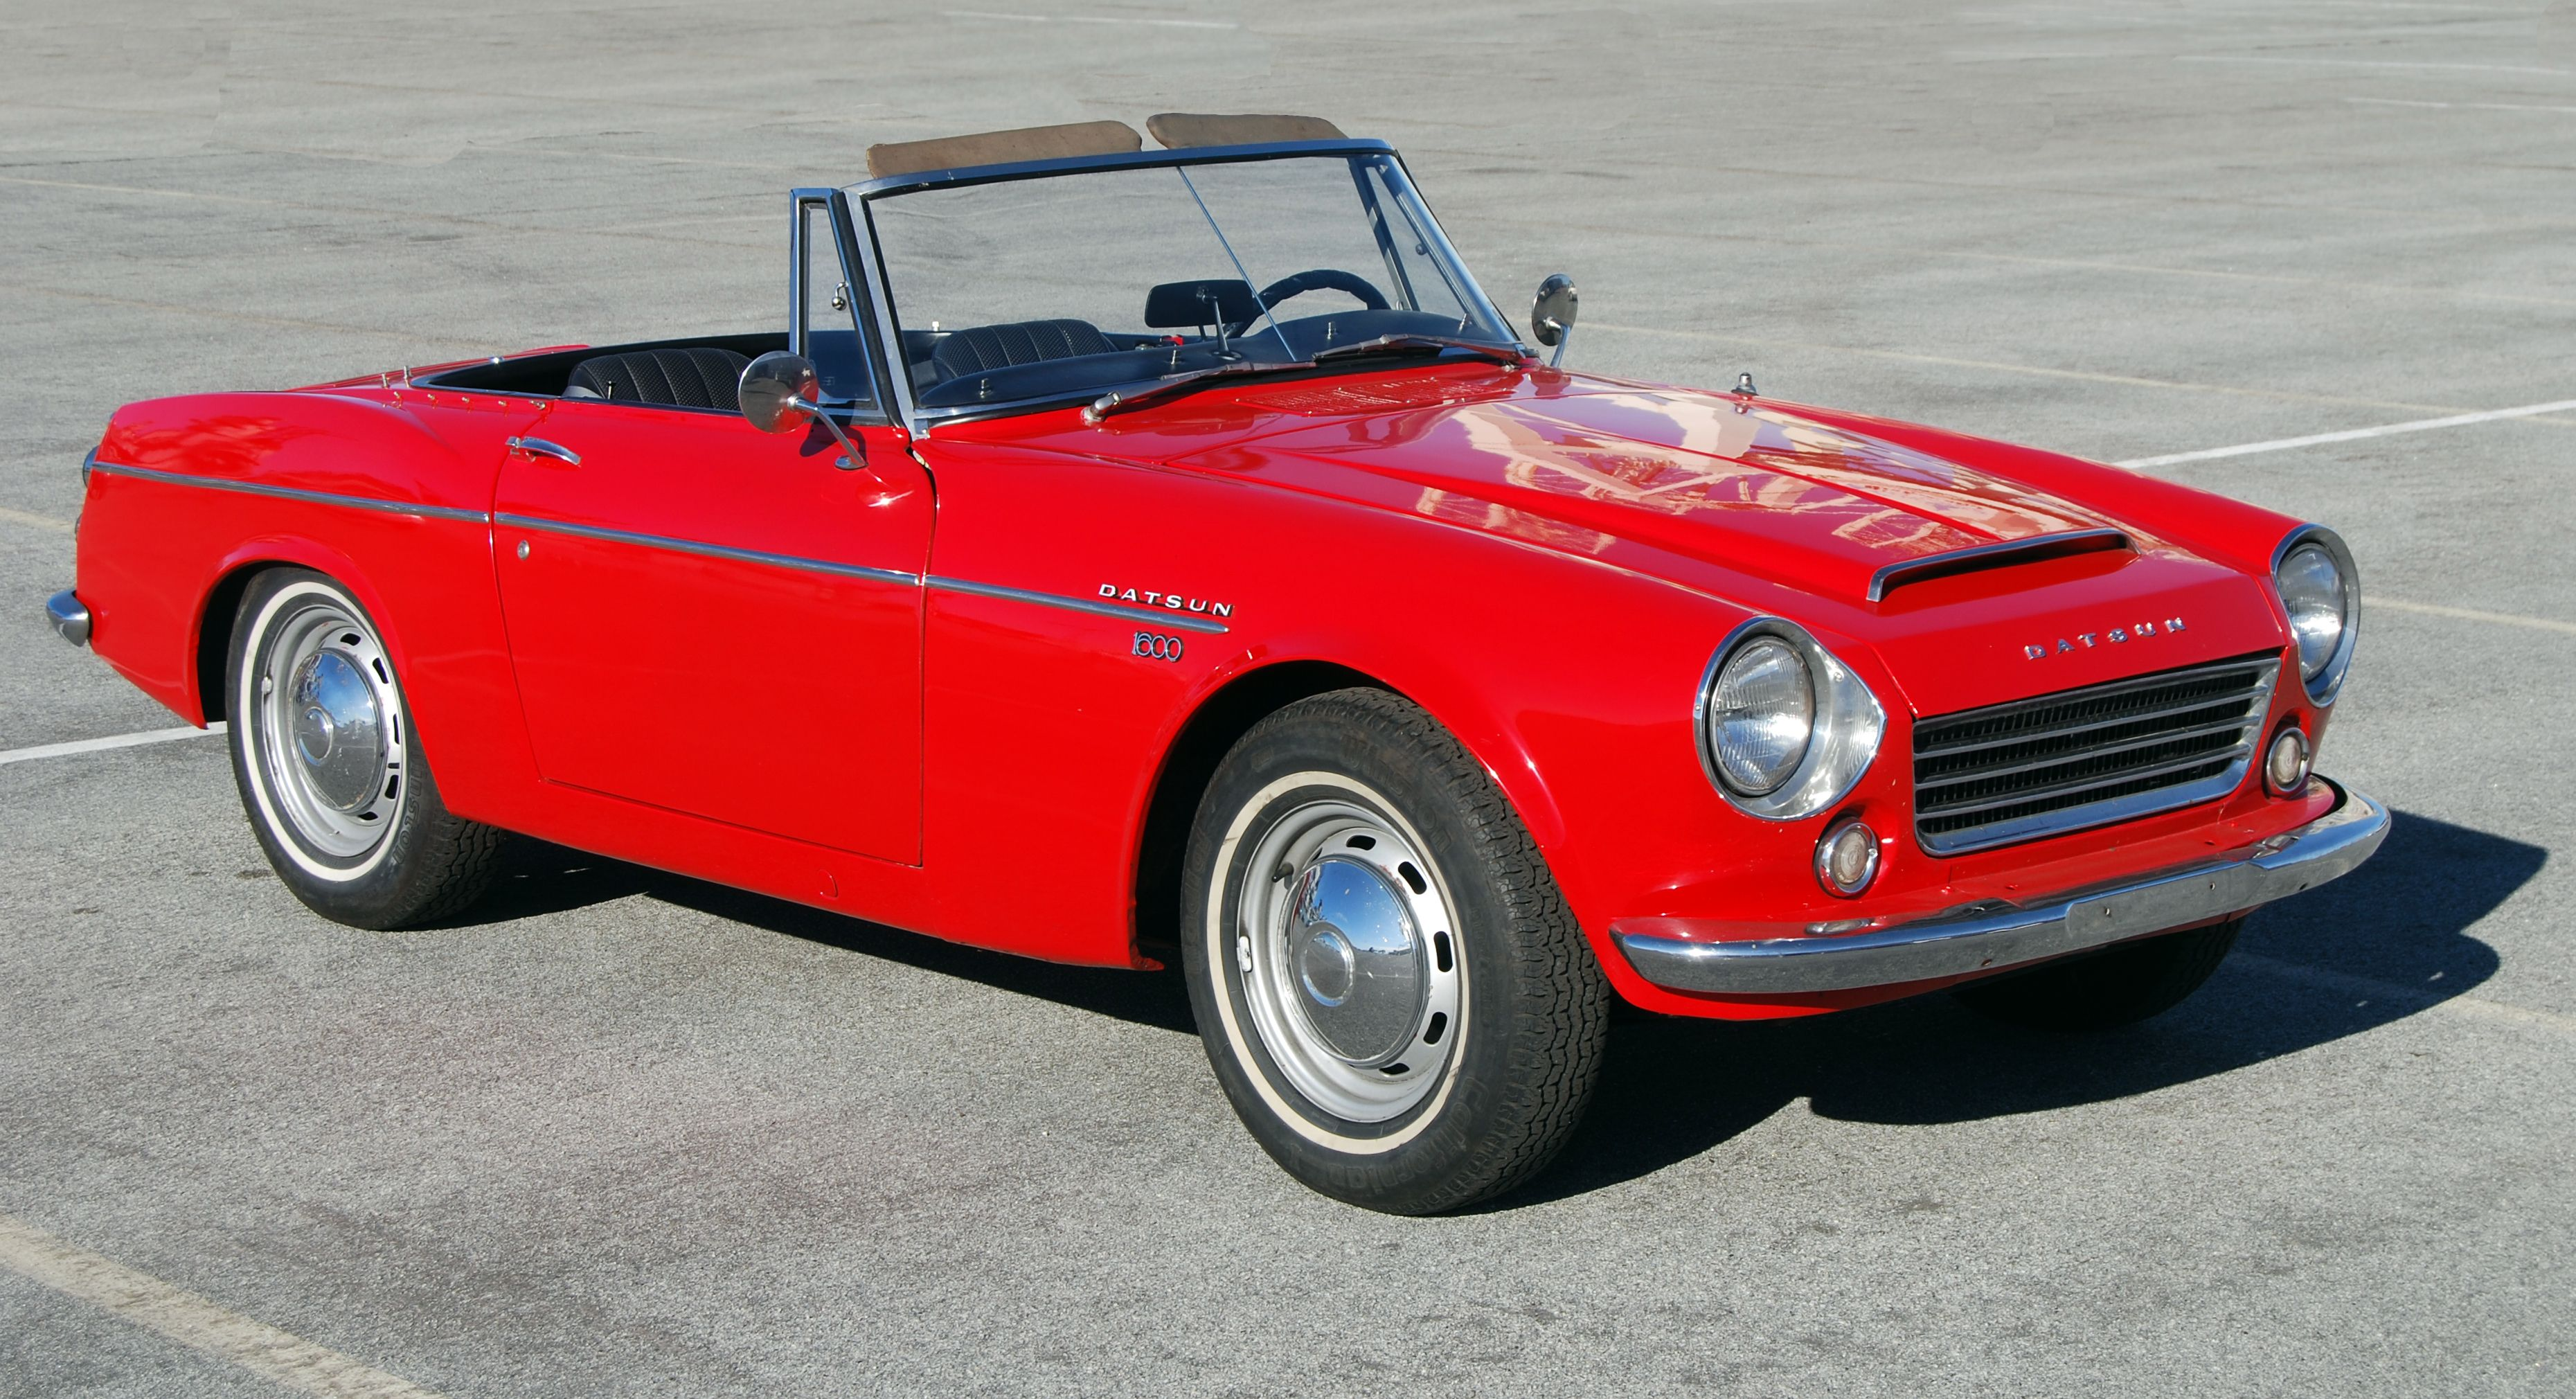 Classic Cars #Datsun 1600, For Buying and Selling New or Used Cars ...